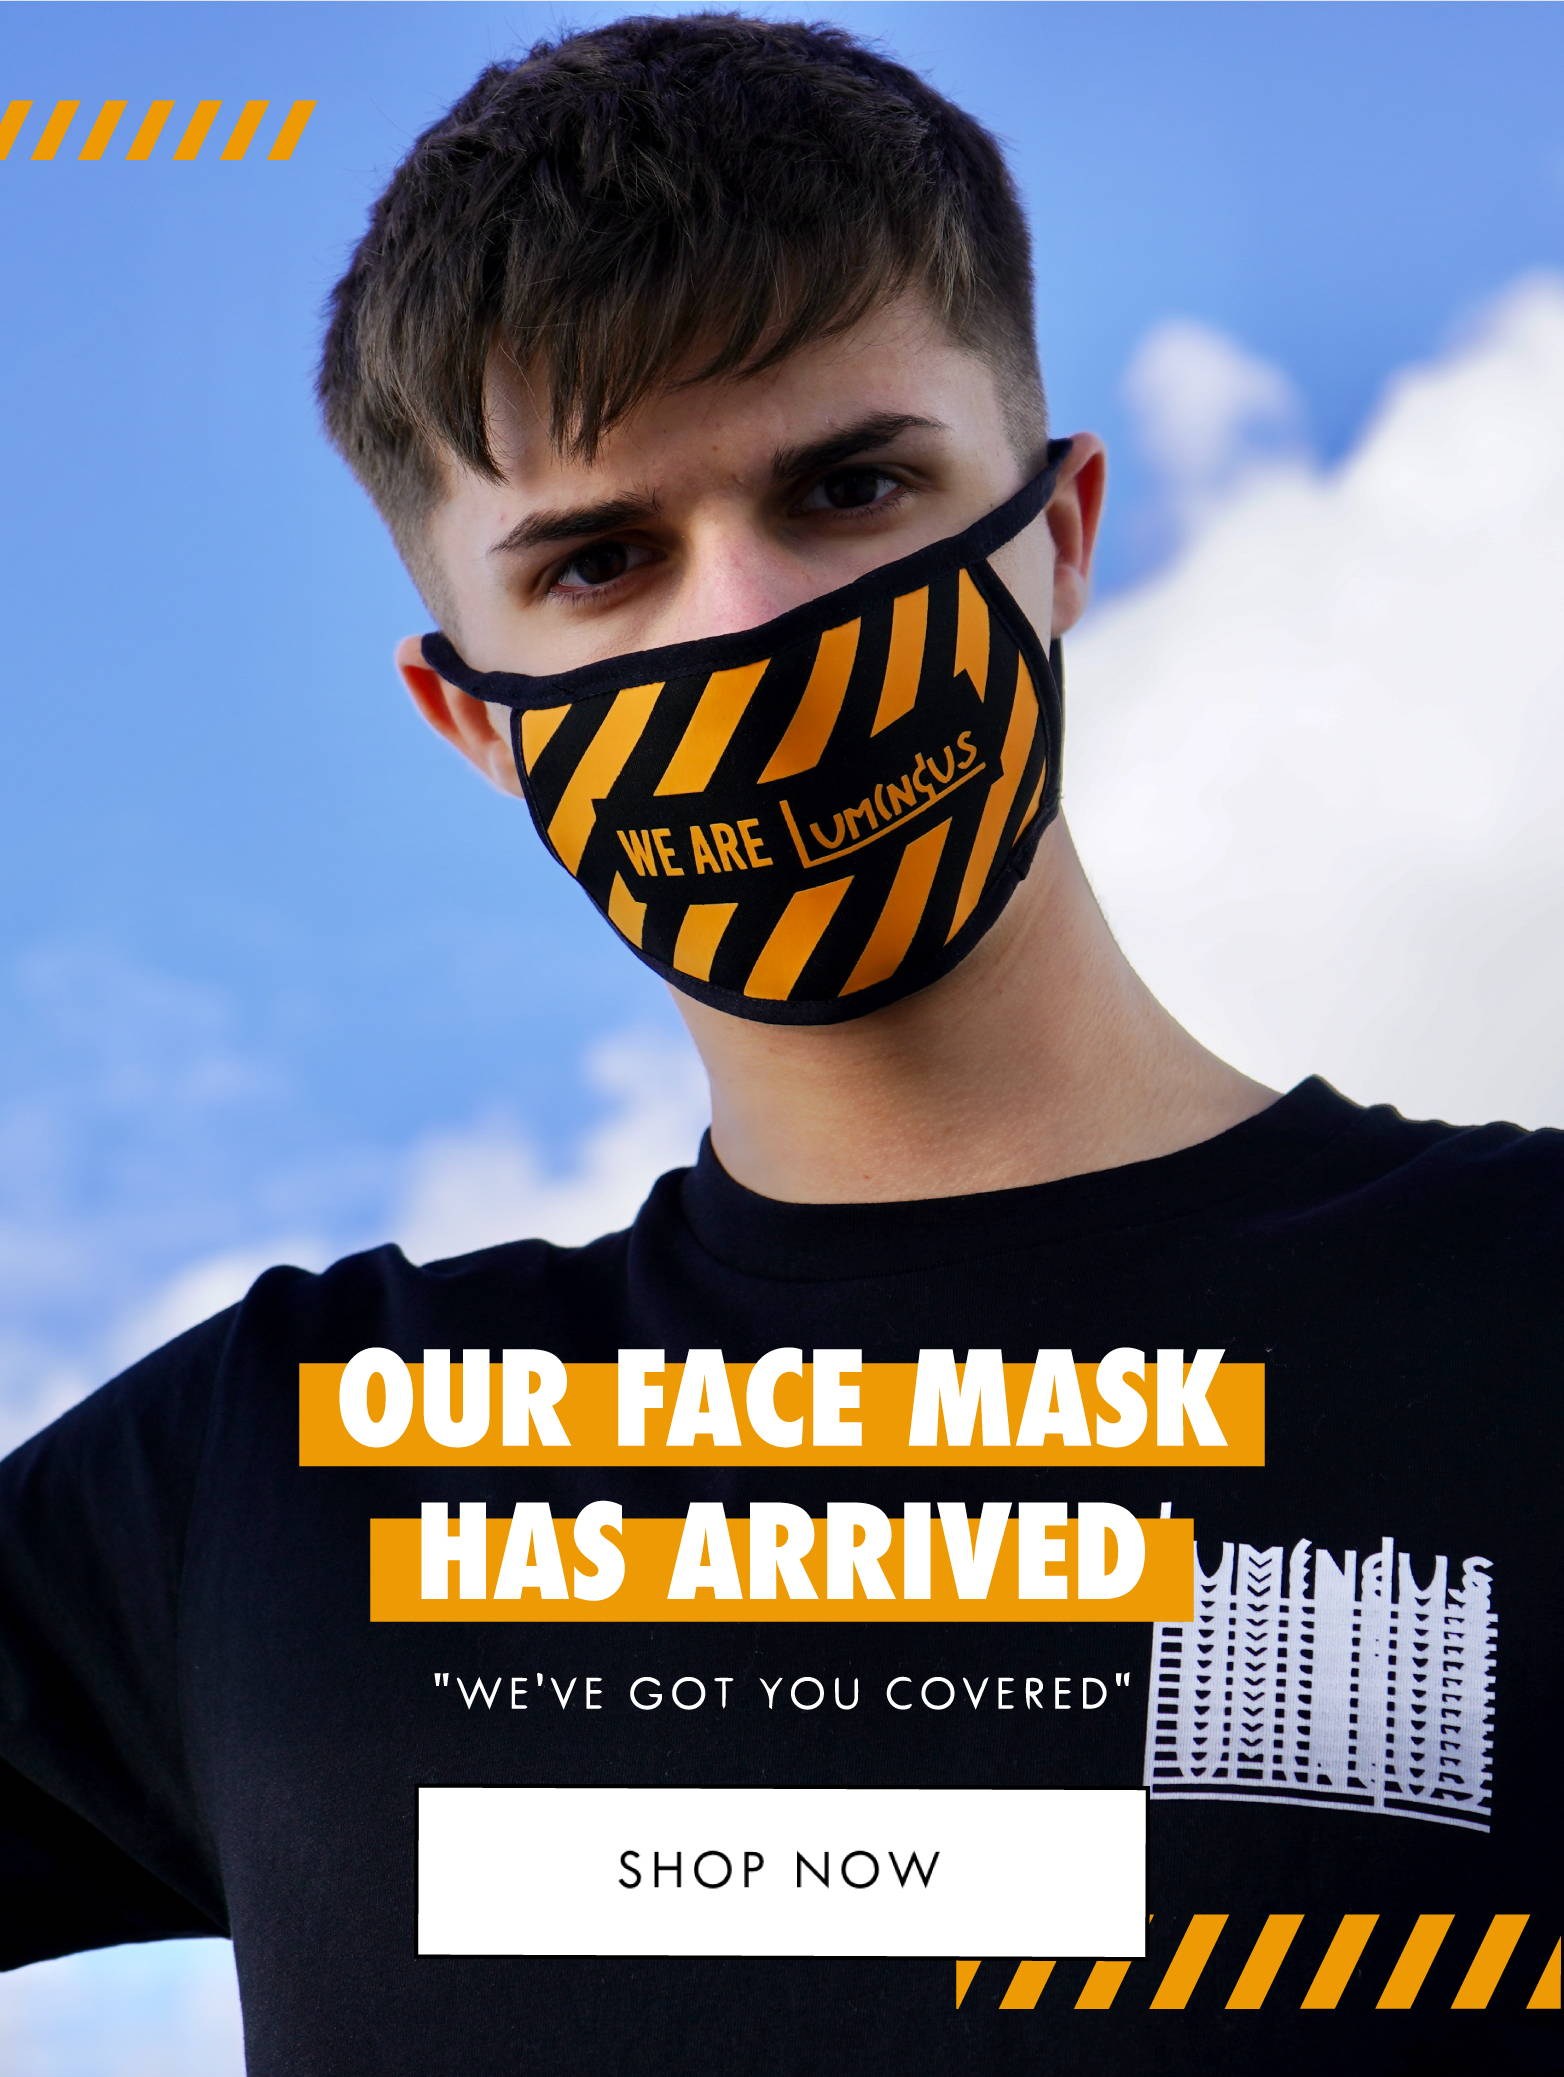 Our Face Mask Has Arrived - We've Got You Covered